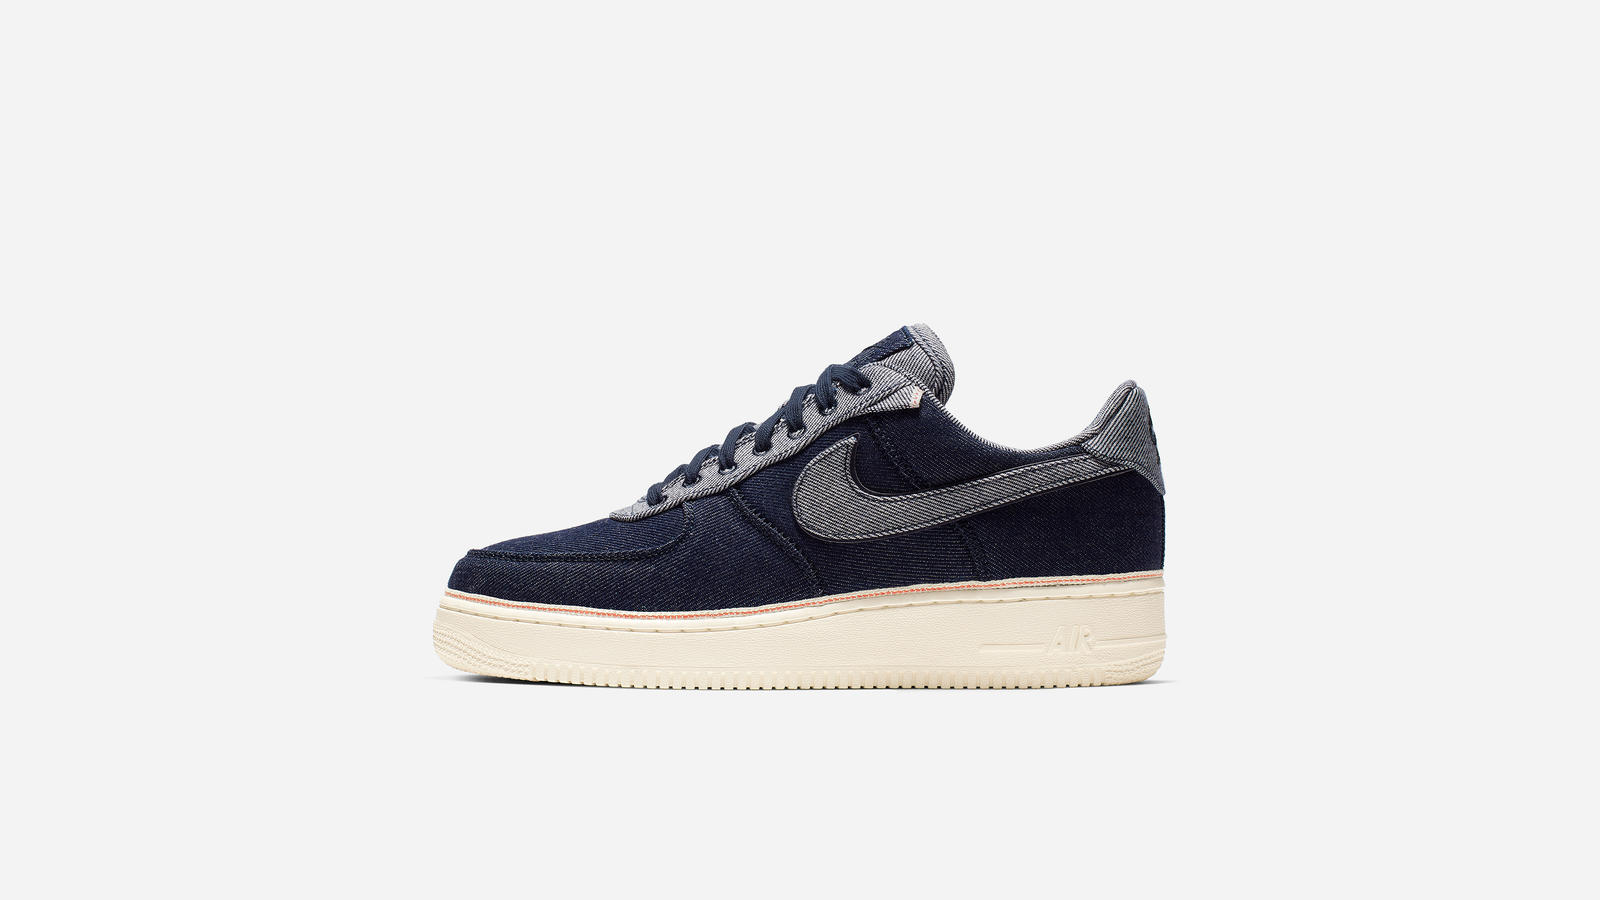 Nike Air Force 1 x 3x1 Denim 6